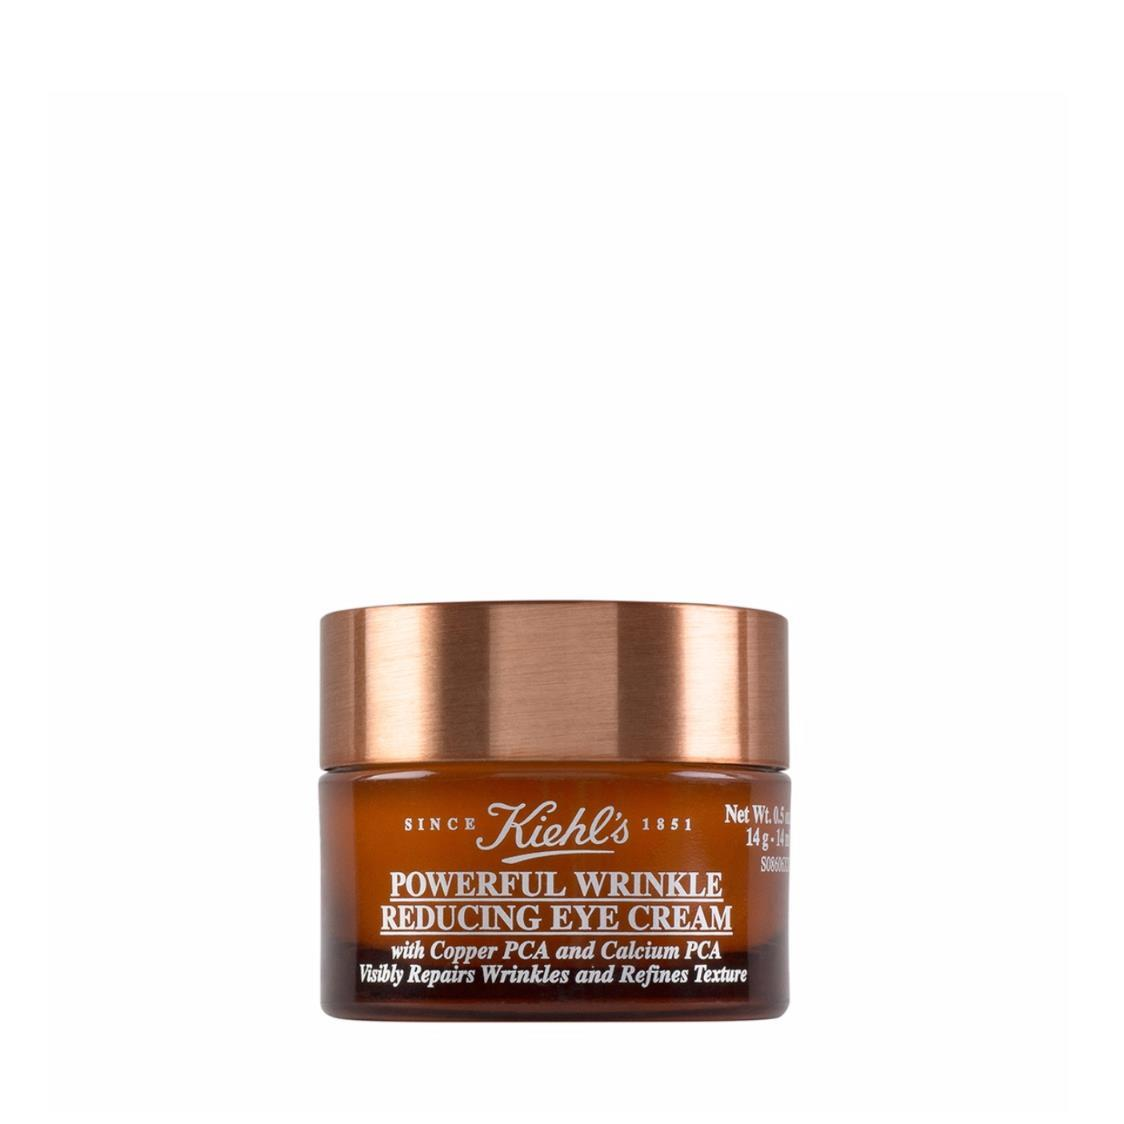 Kiehls Since 1851 Powerful Wrinkle Reducing Eye Cream 14ml